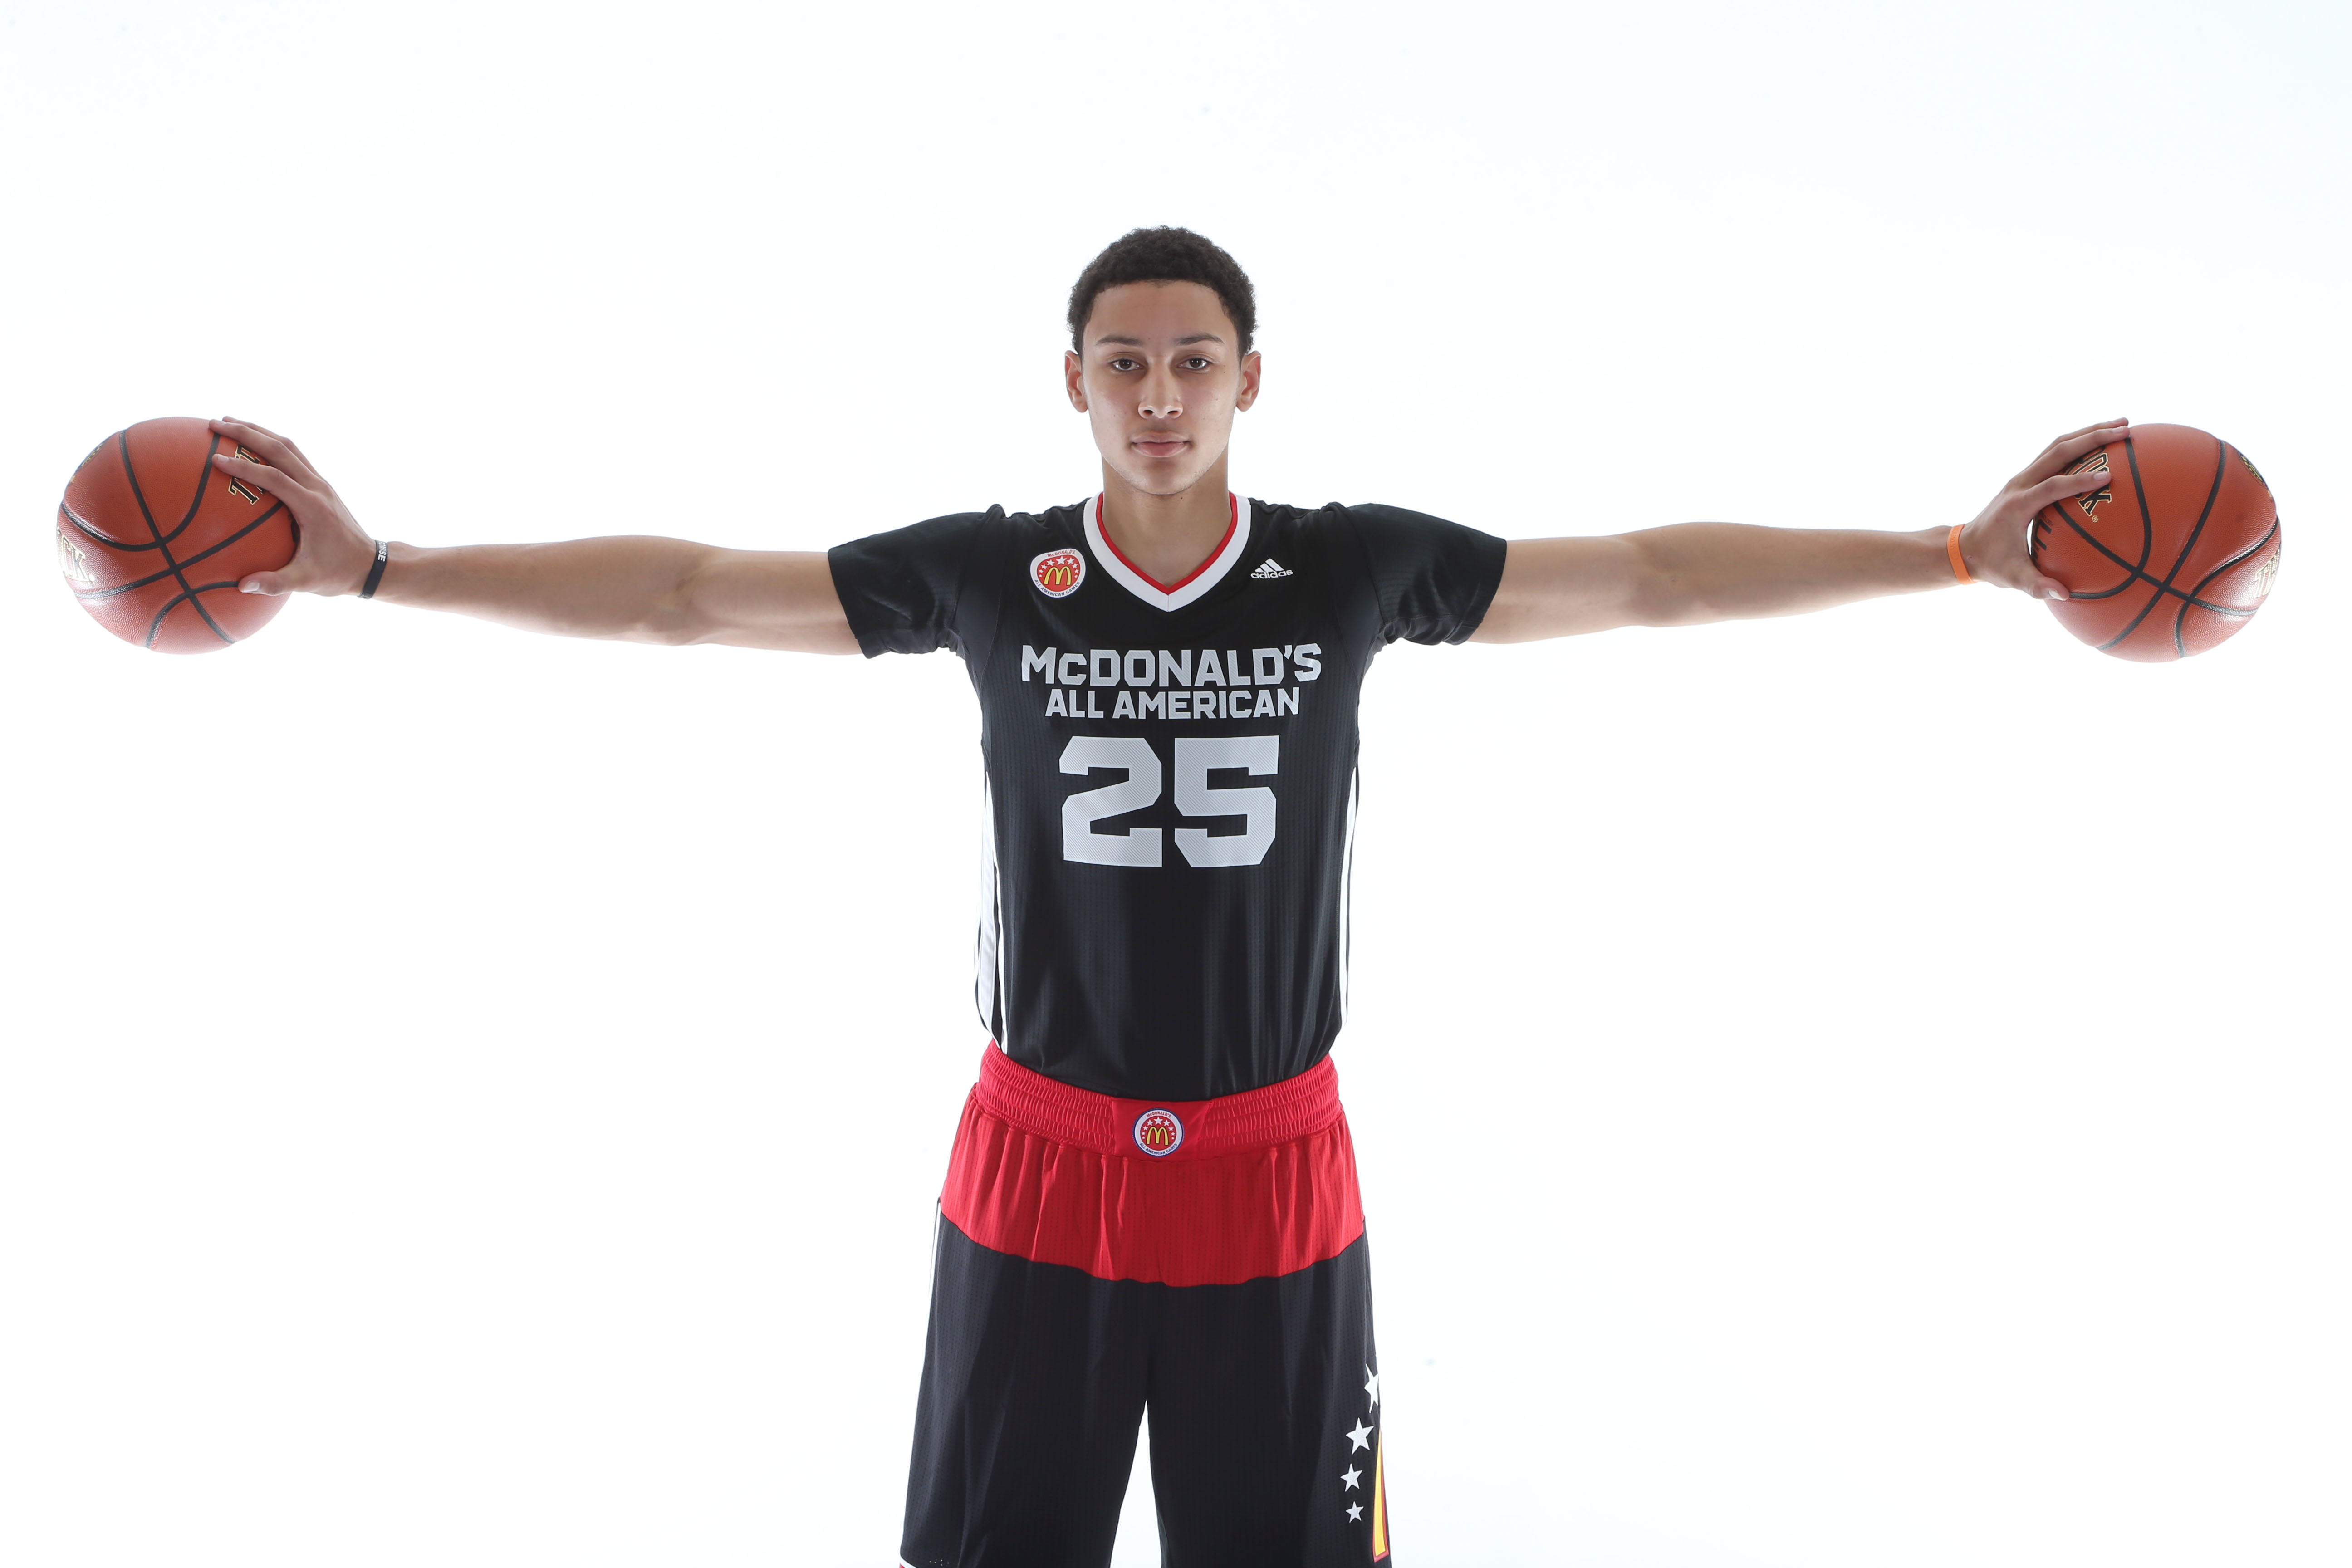 Ben Simmons on photo day at the MdDonald's All American Game (Photo: Brian Spurlock, USA TODAY Sports)